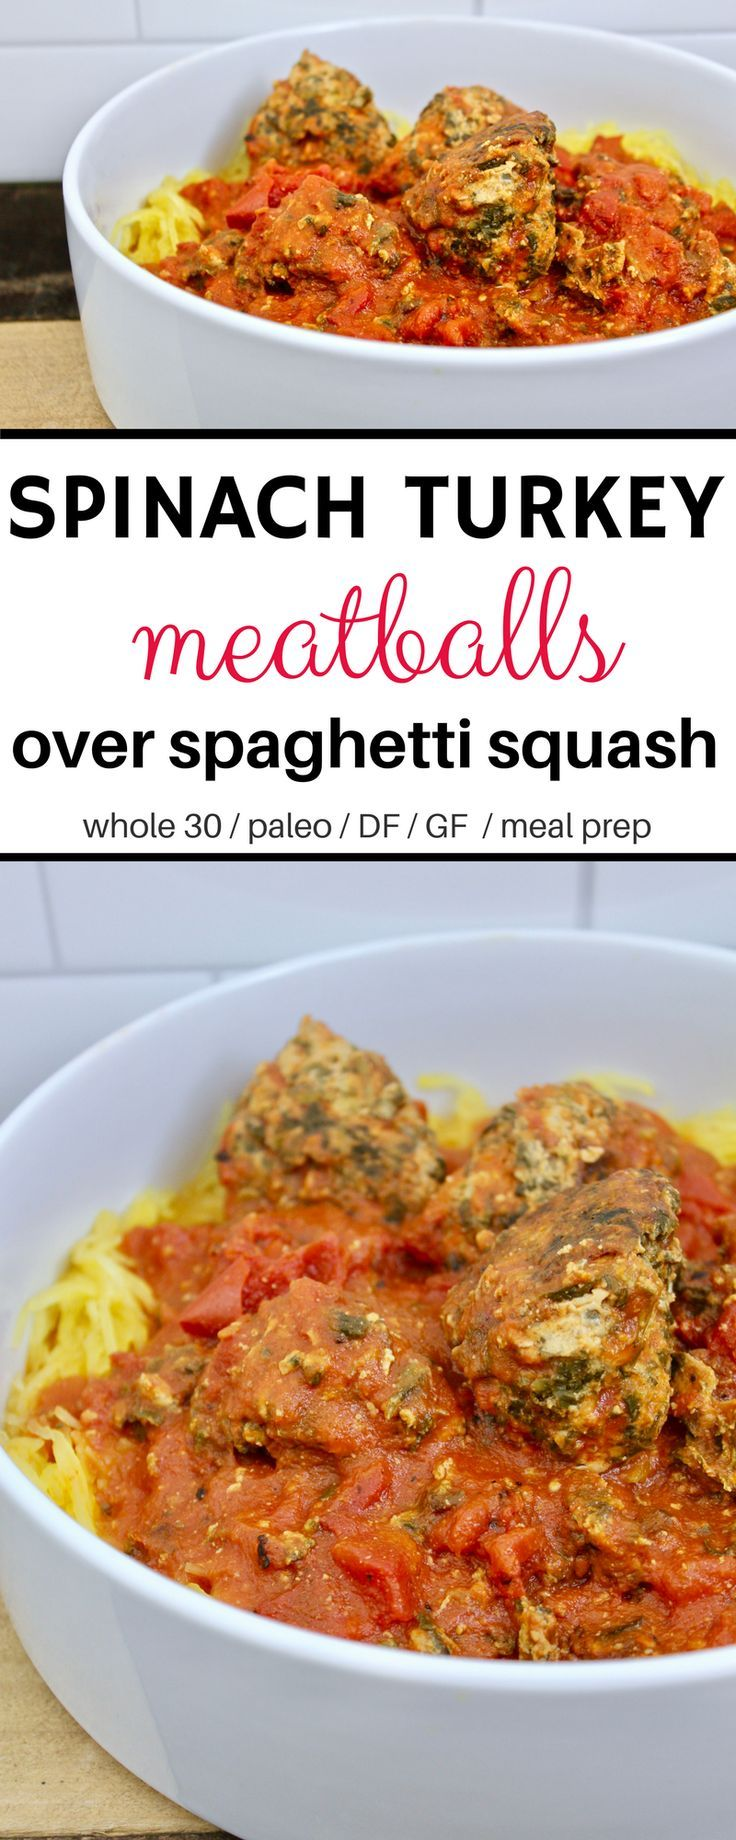 Spinach Turkey Meatballs in Tomato Sauce over Roasted Spaghetti Squash - whole 30, paleo, dairy free, gluten free. Perfect for meal prep. Option in recipe to only make meatballs!